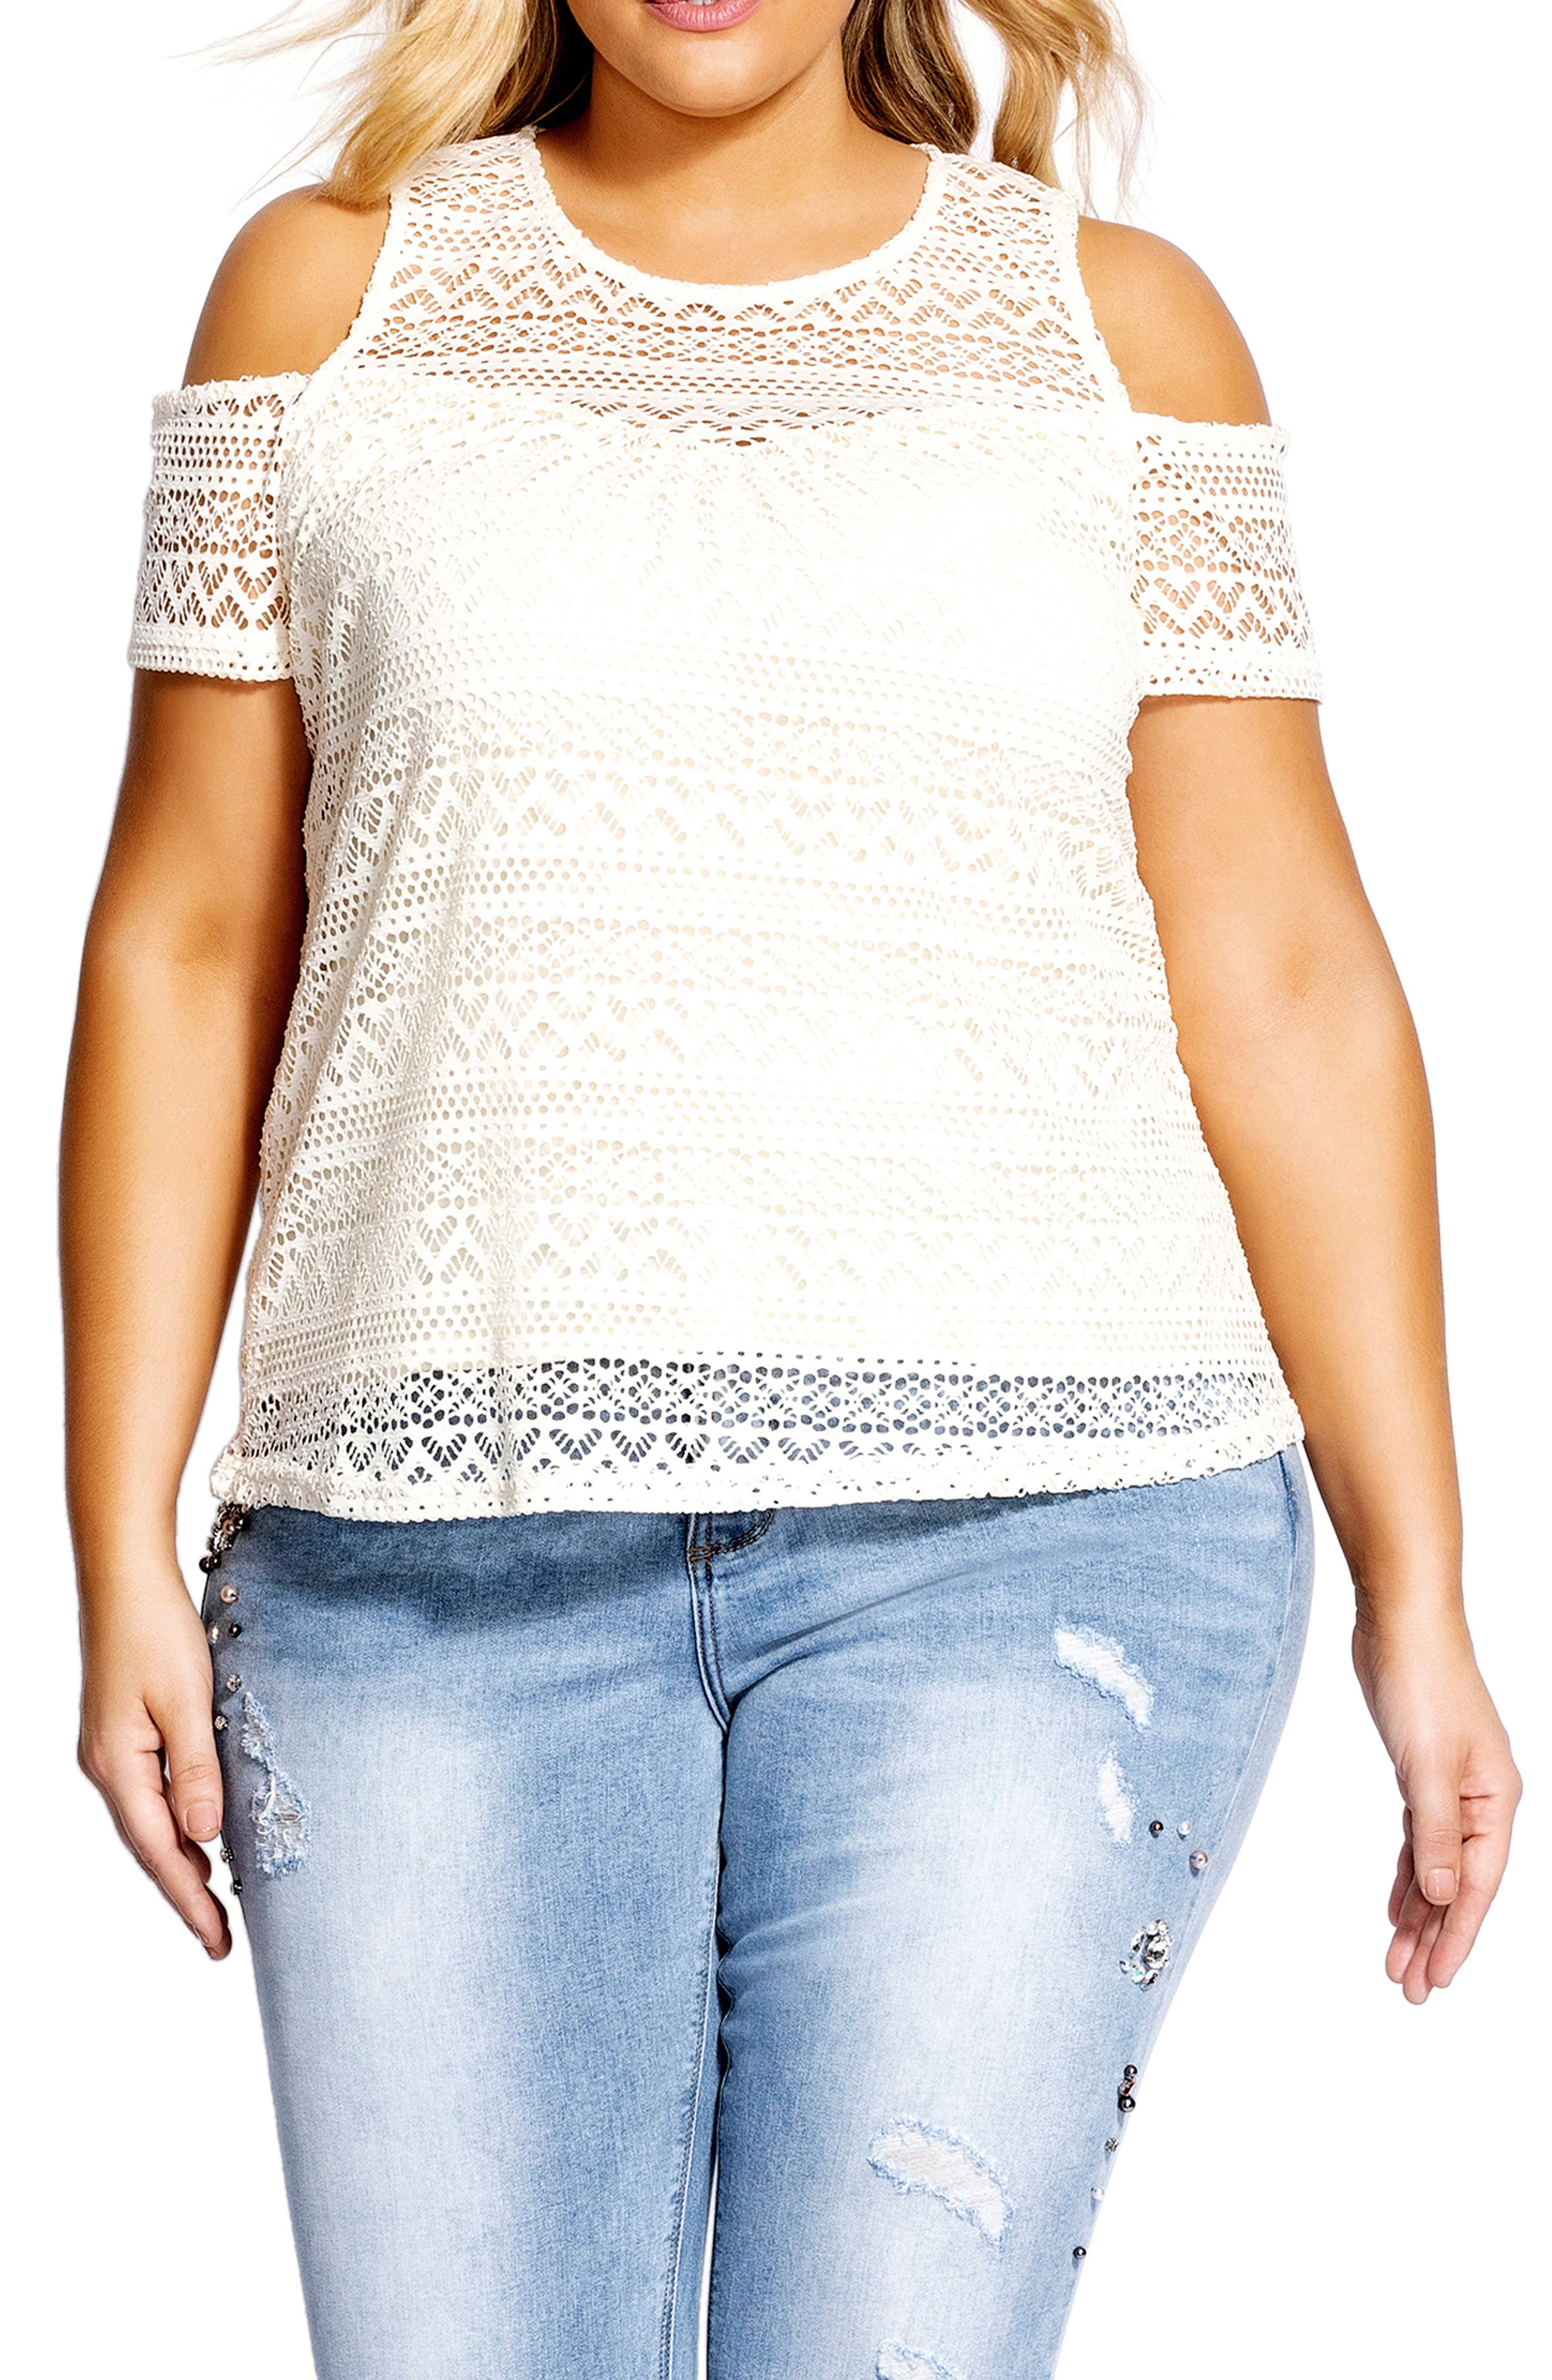 CITY CHIC, Serenity Lace Cold Shoulder Top, Main thumbnail 1, color, 111